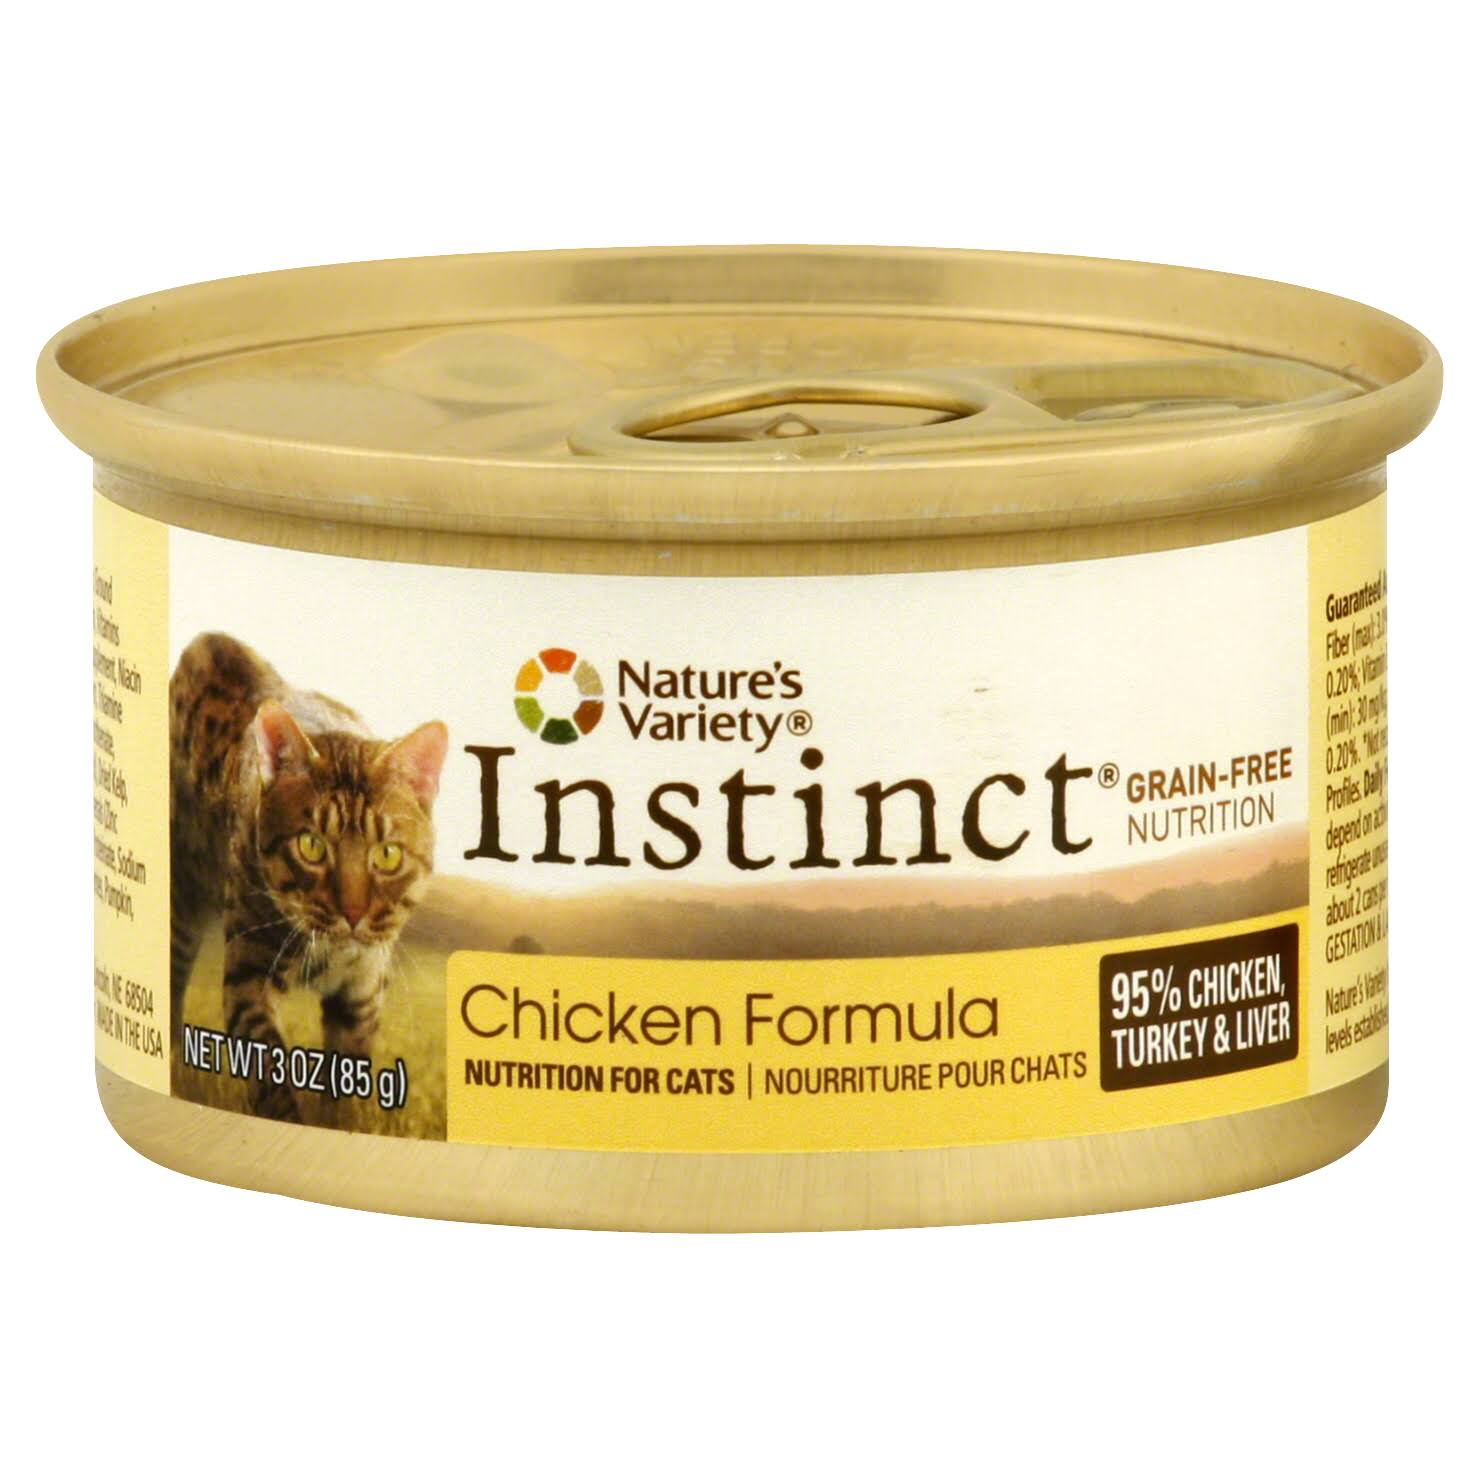 Nature's Variety Instinct Cat Food - Chicken Formula